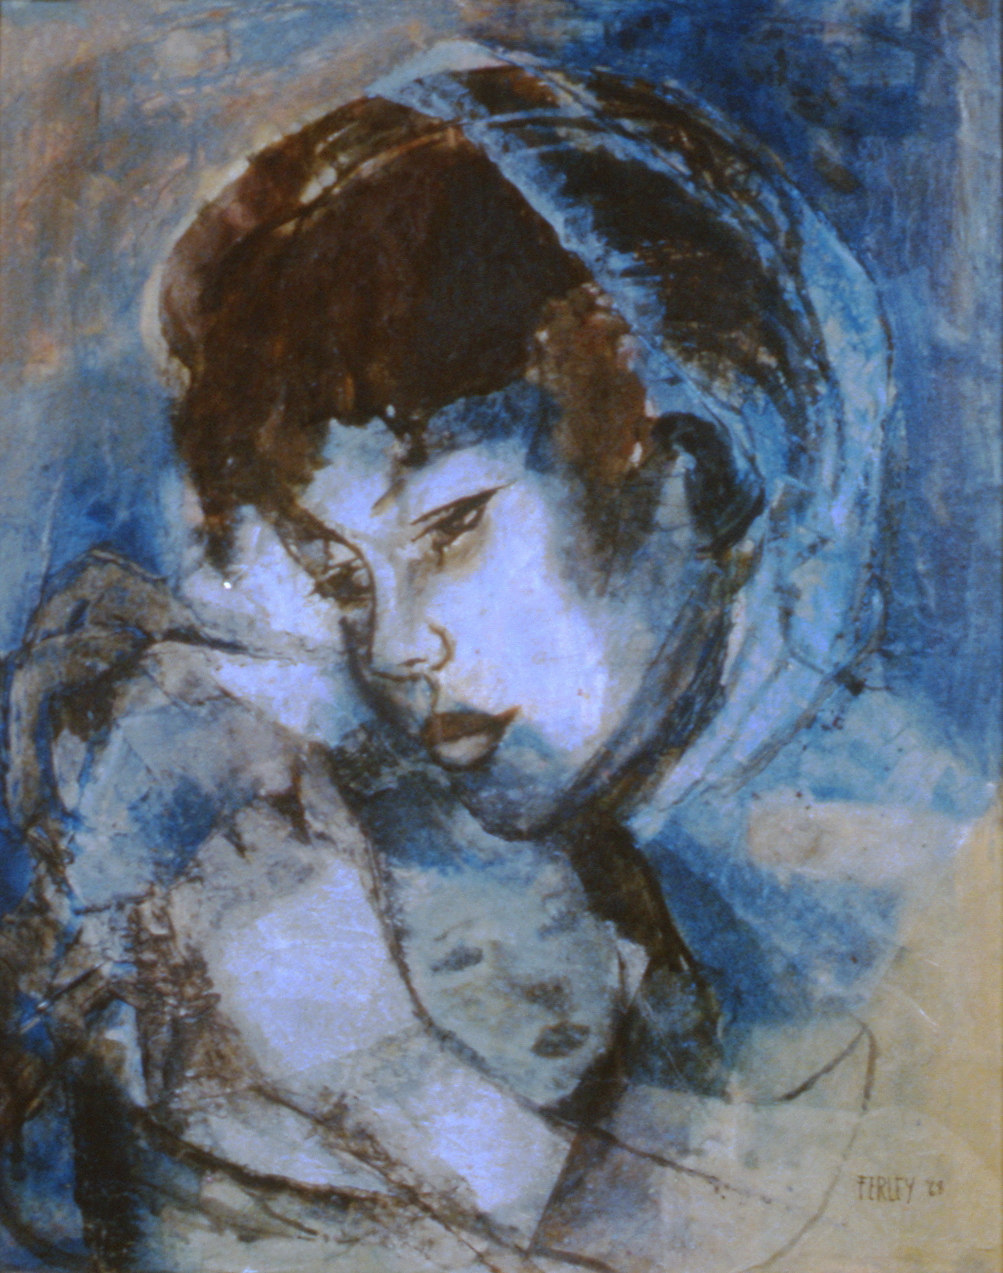 Madonna , 1968, Muriel Ferley, acrylic collage, 30 cm x 39.5 cm, 1968.01.02, gift of an anonymous Art Club member